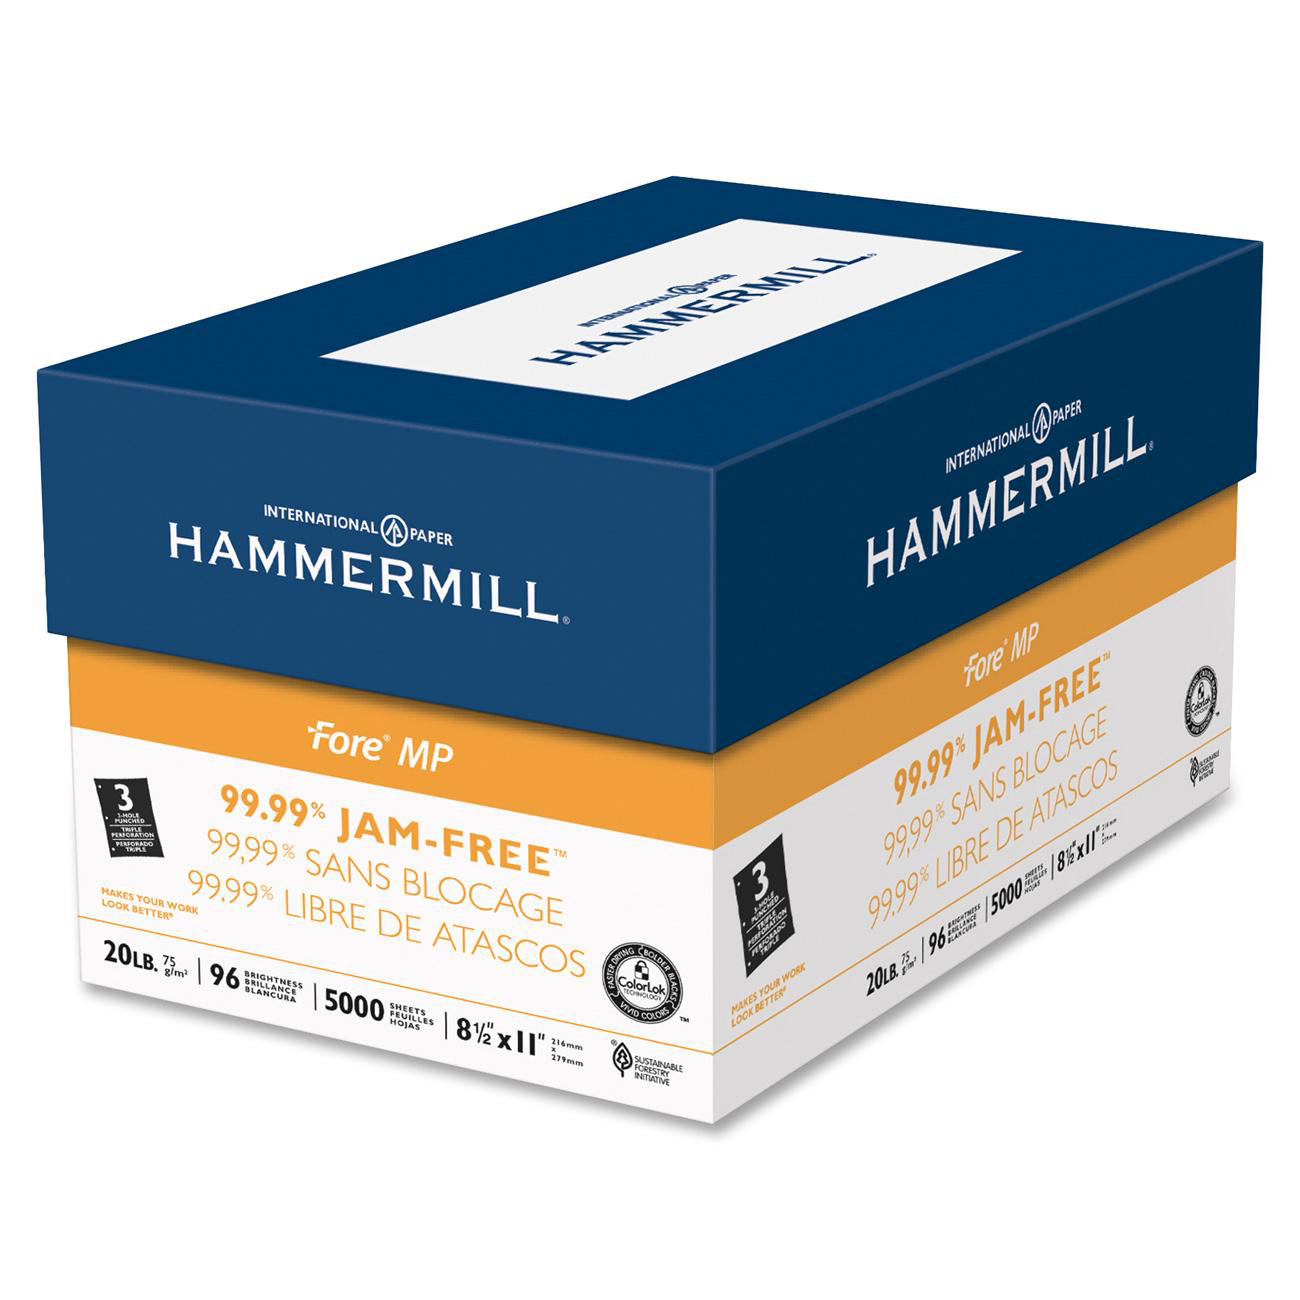 Hammermill Jam-Free 3-hole Punched Fore MP Paper -HAM103275